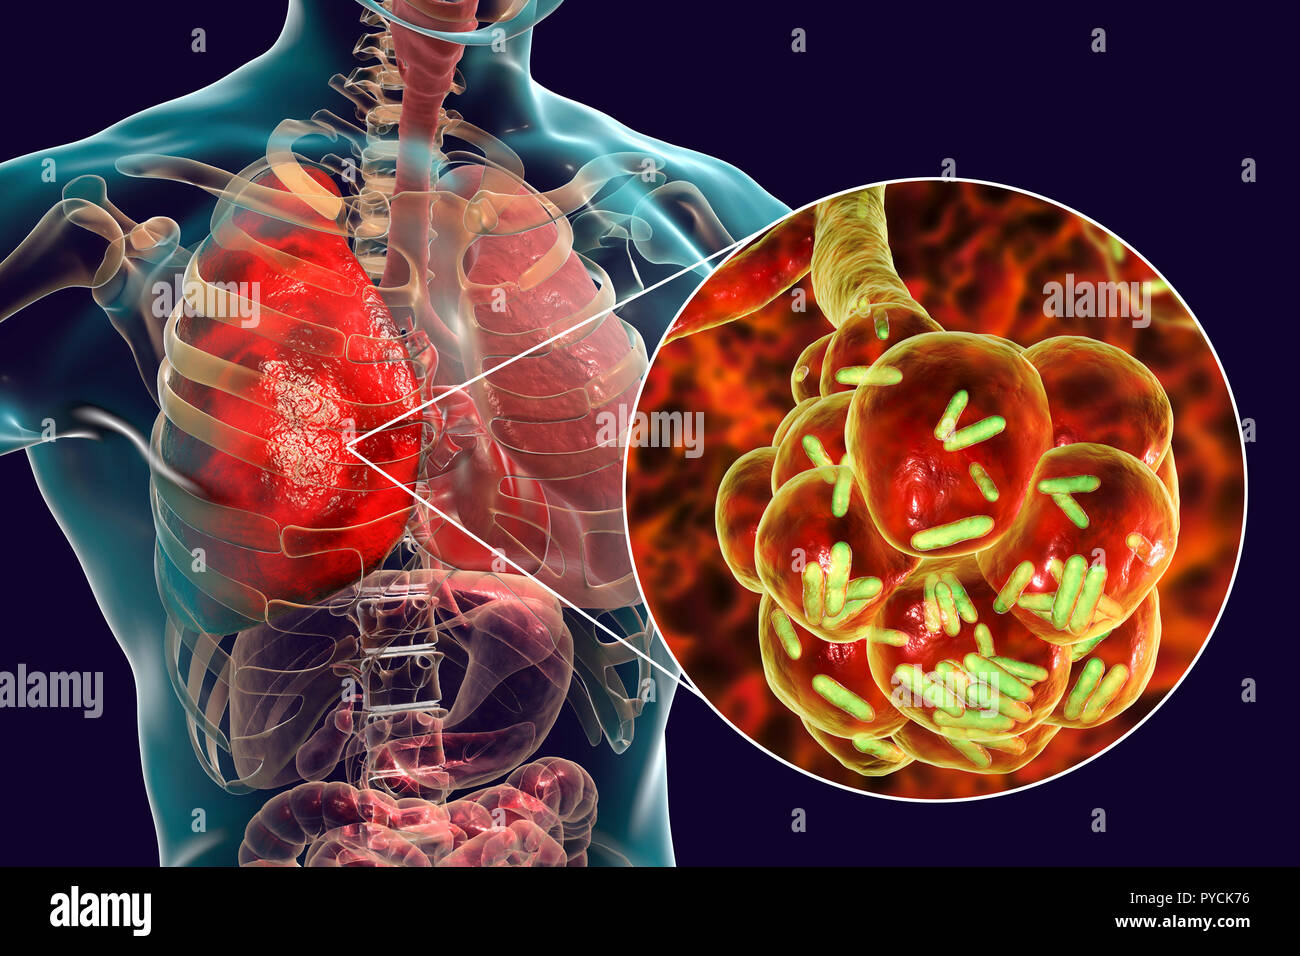 Bacterial pneumonia. Computer illustration of rod-shaped bacteria (bacilli) inside the alveoli of the lungs, causing a lower respiratory tract infection. This is more generally known as pneumonia, though that term can also be reserved for specific types of infection. Severe lung infections are diagnosed by X-ray and treated by antibiotics. The alveoli are the site of gaseous exchange between the air in the lungs and the blood. - Stock Image